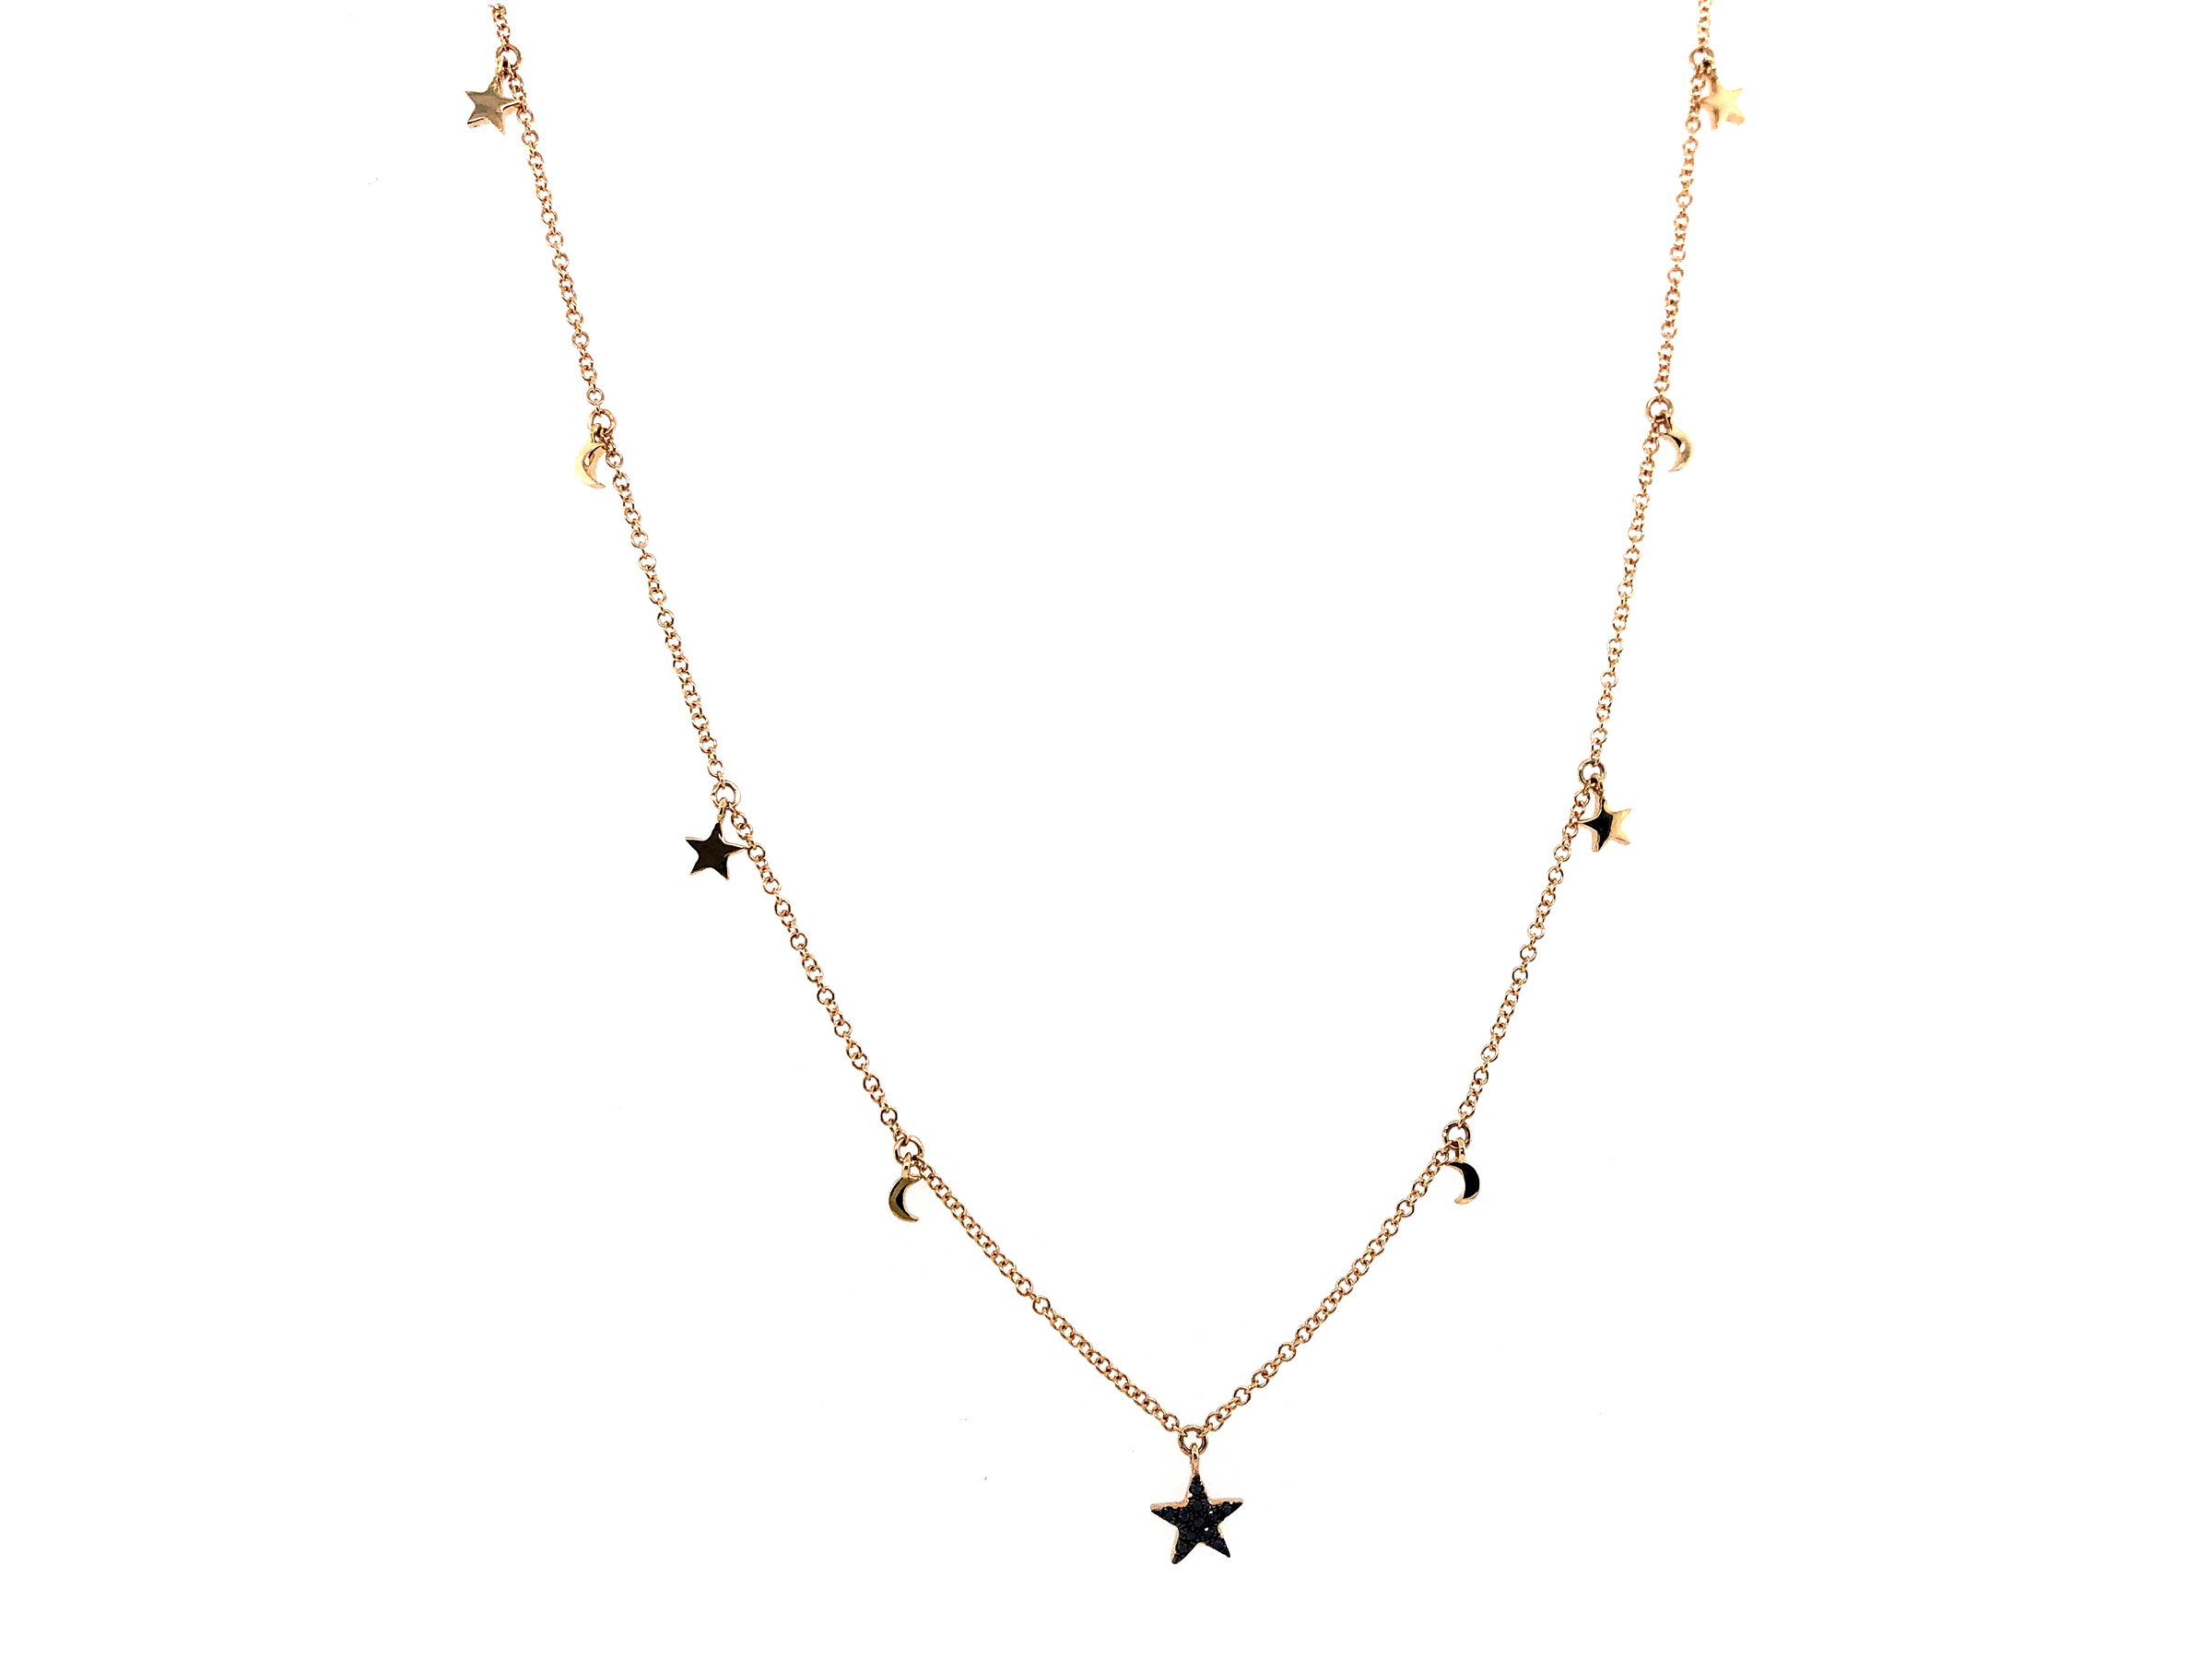 Black Diamond Celestial Charm Necklace